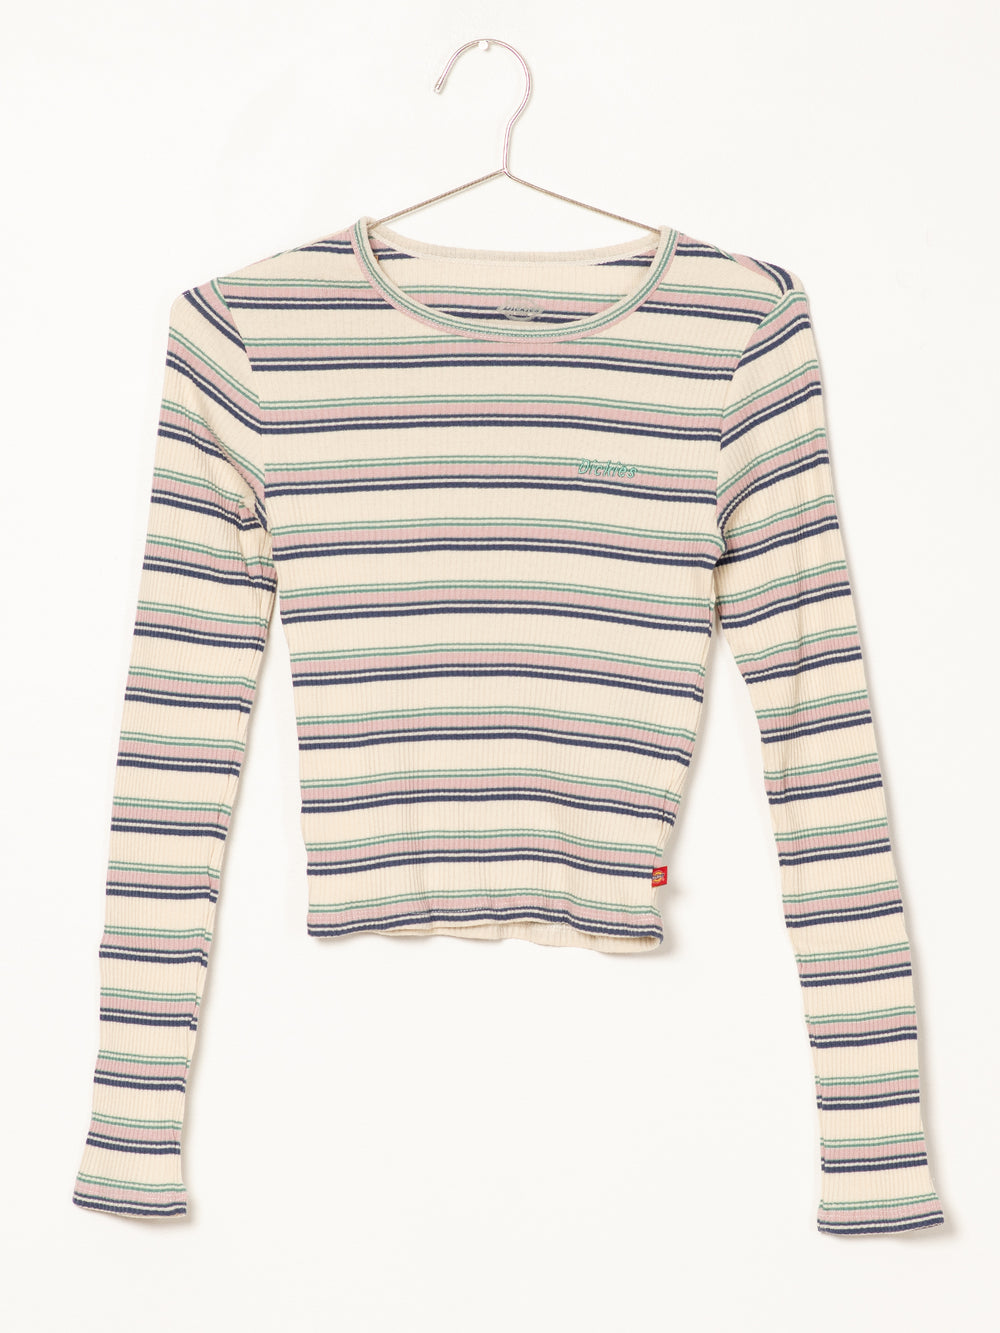 WOMENS POOR BOY RIB EMB LONG SLEEVE TEE - WHT